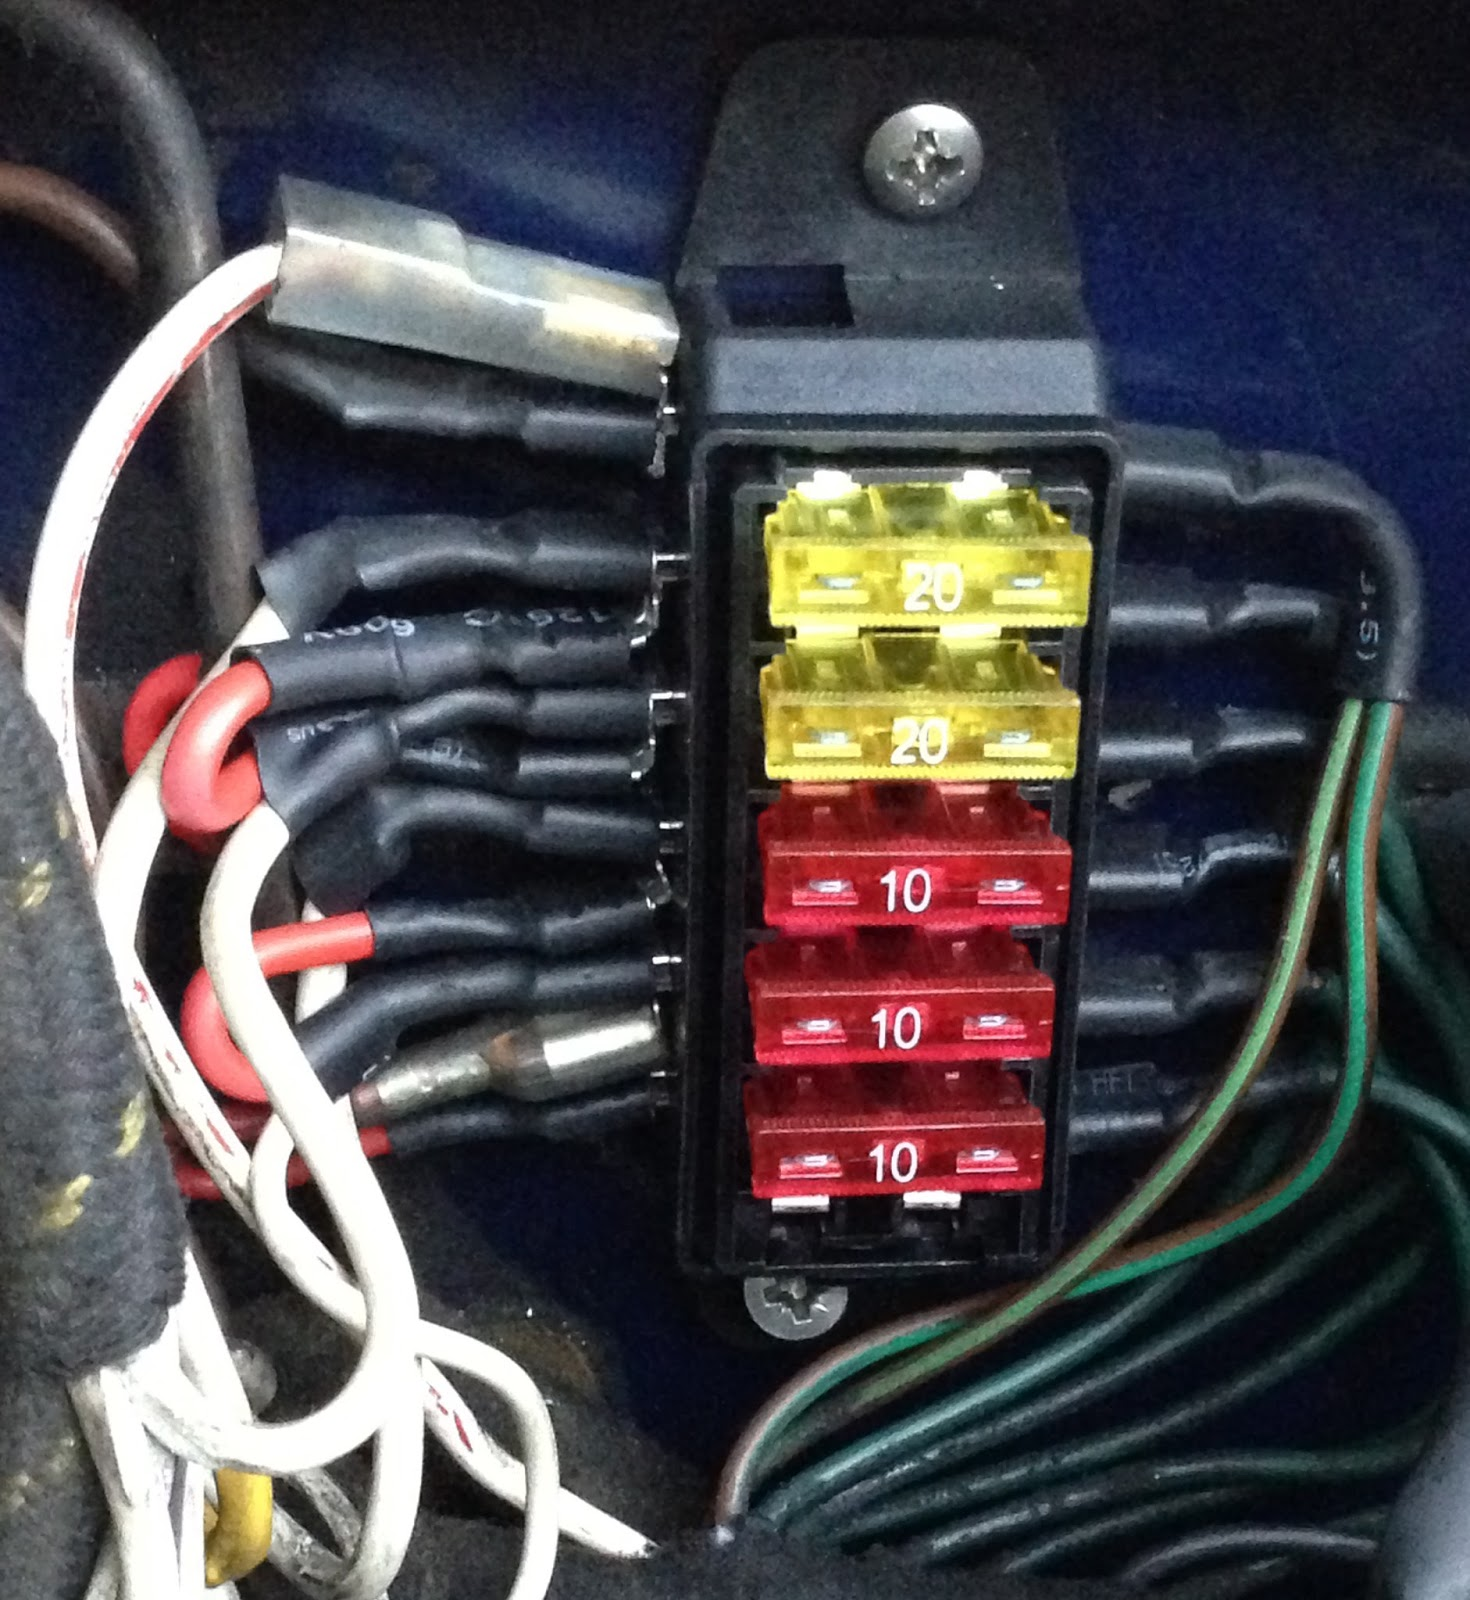 Fuse Box Fail 13 Wiring Diagram Images Diagrams Electrical Healey2bfuses2b12btrimmed Did The Austin Healey Harness Need Modifying When New 6 Slot Block